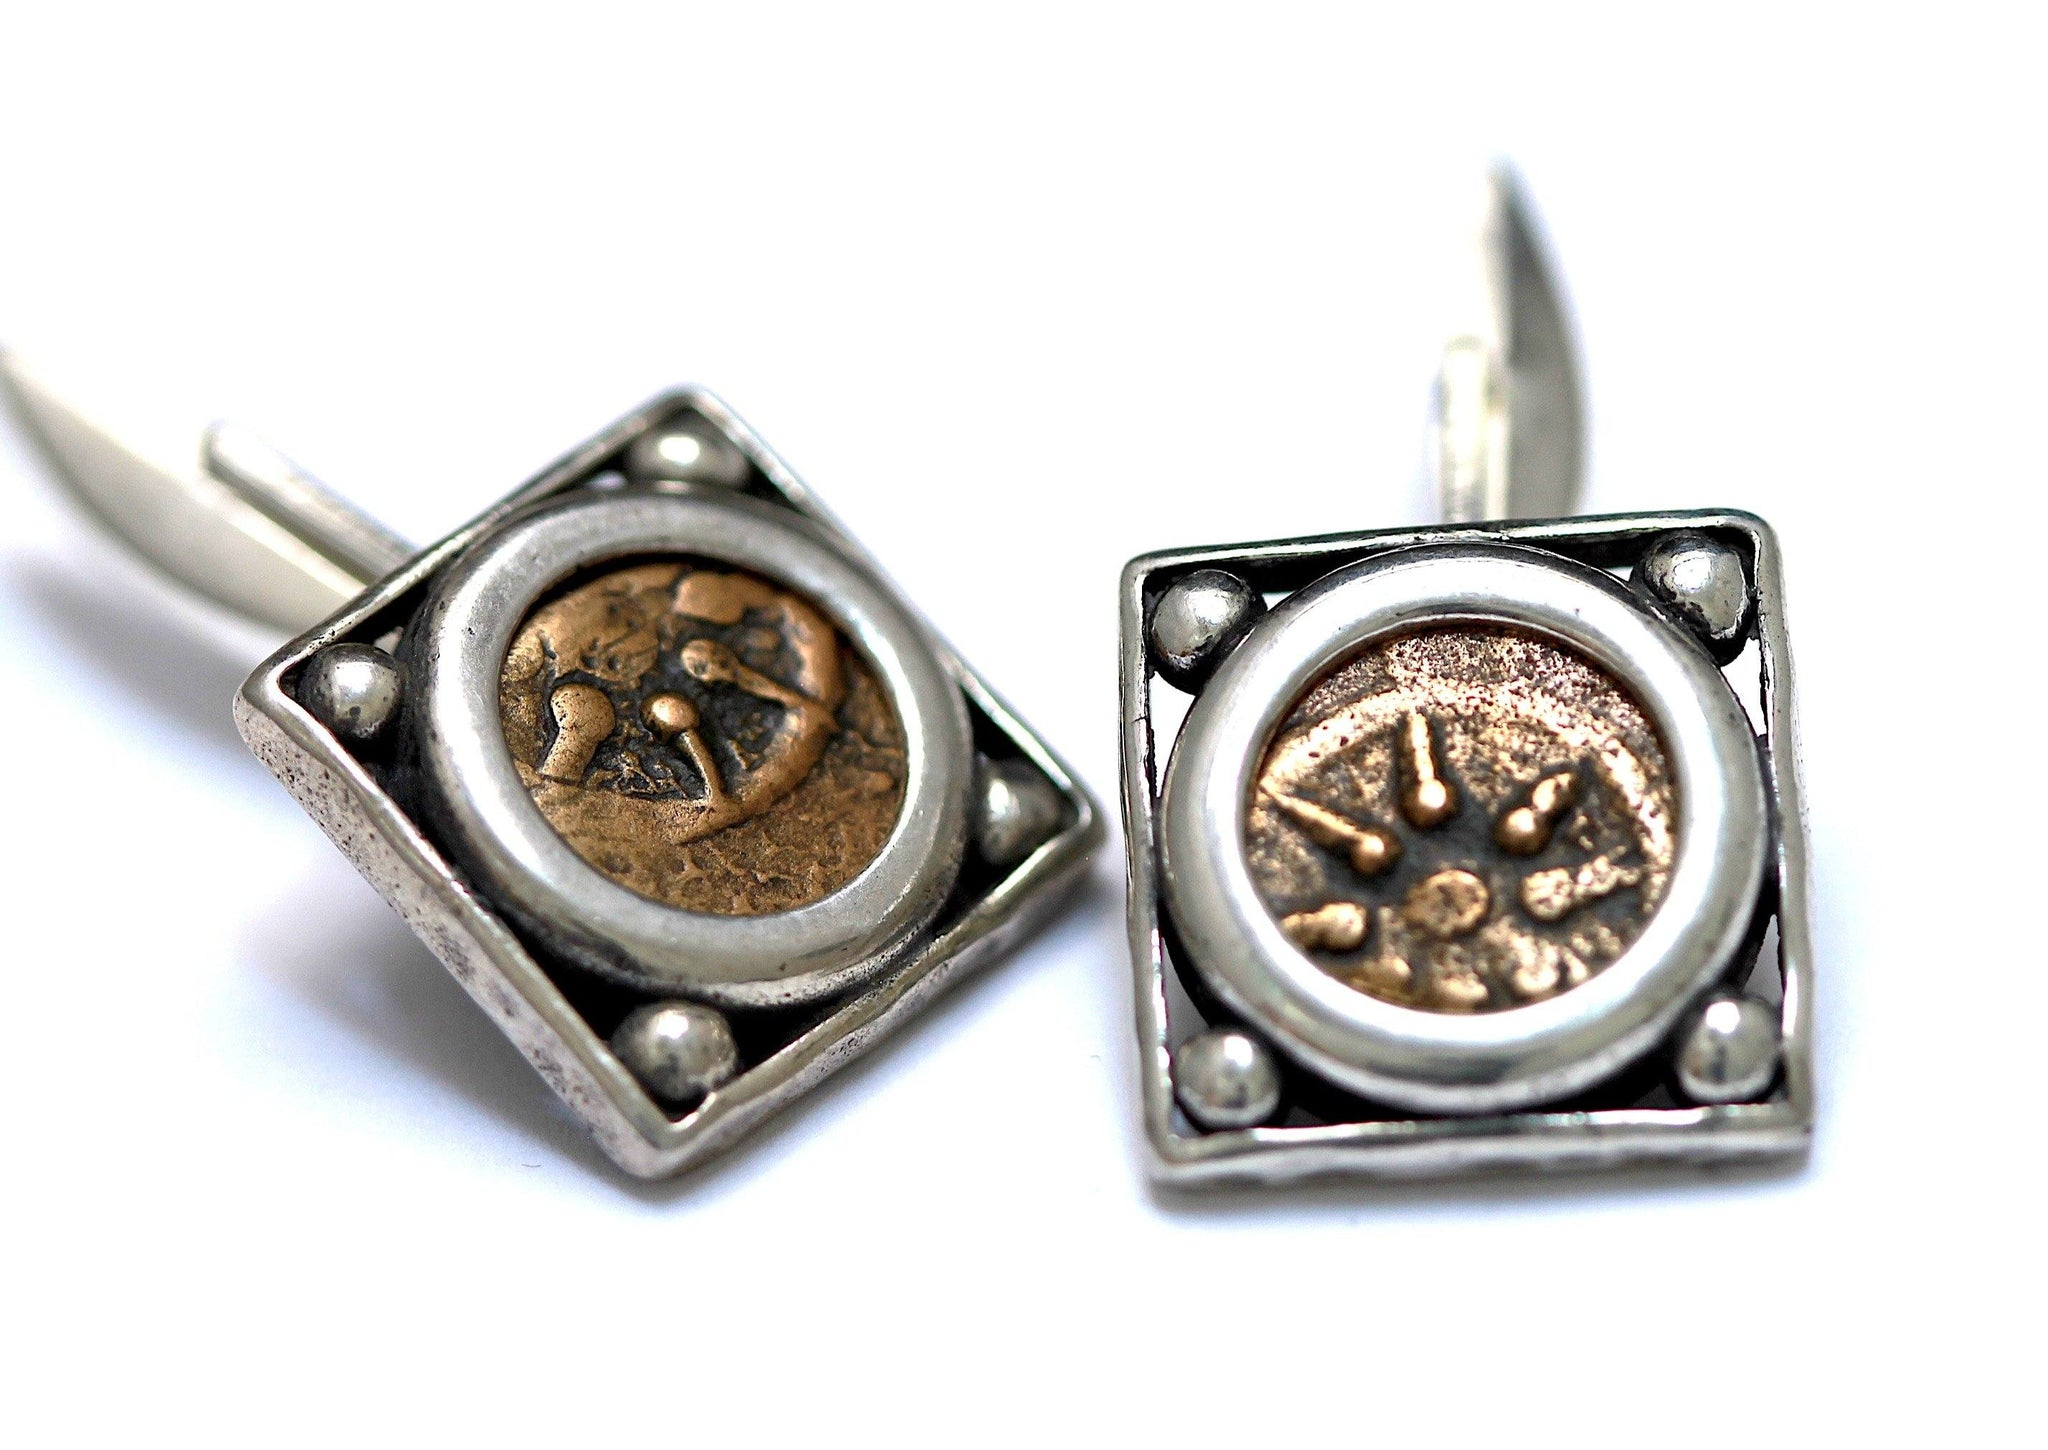 Widows Mite, Star Up, Ancient Judaean Coins, Sterling Silver Cufflinks,  Genuine Ancient Coins, wth Certificate RC7-W - Erez Ancient Coin Jewelry, ancient coin jewelry, men jewelry, genuine ancient coins, made in the US